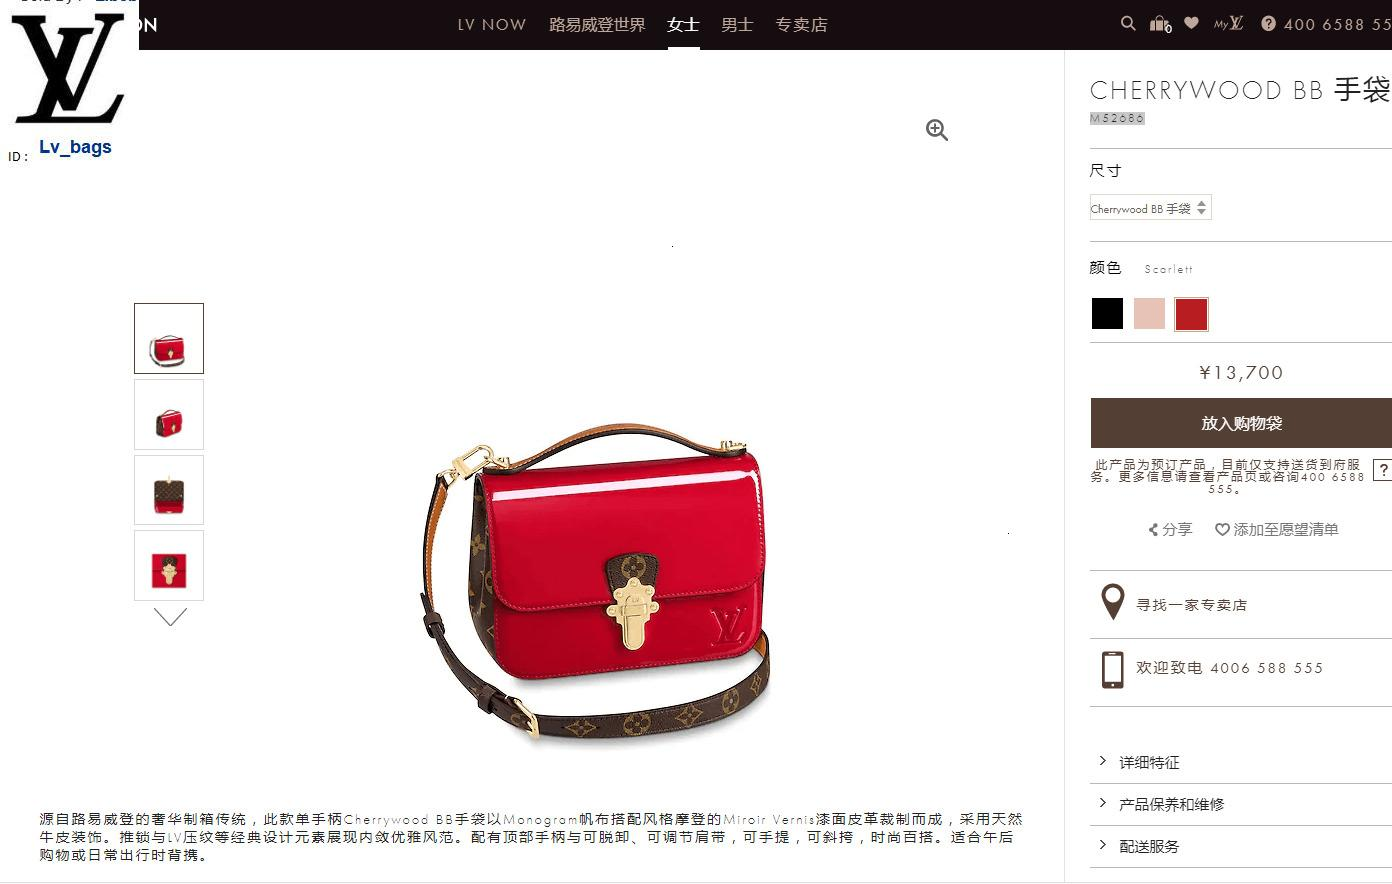 Yangzizhi New Cherrywood Bb Handbag M52686 Handbags Bags Top Handles Shoulder Bags Totes Evening Cross Body Bag